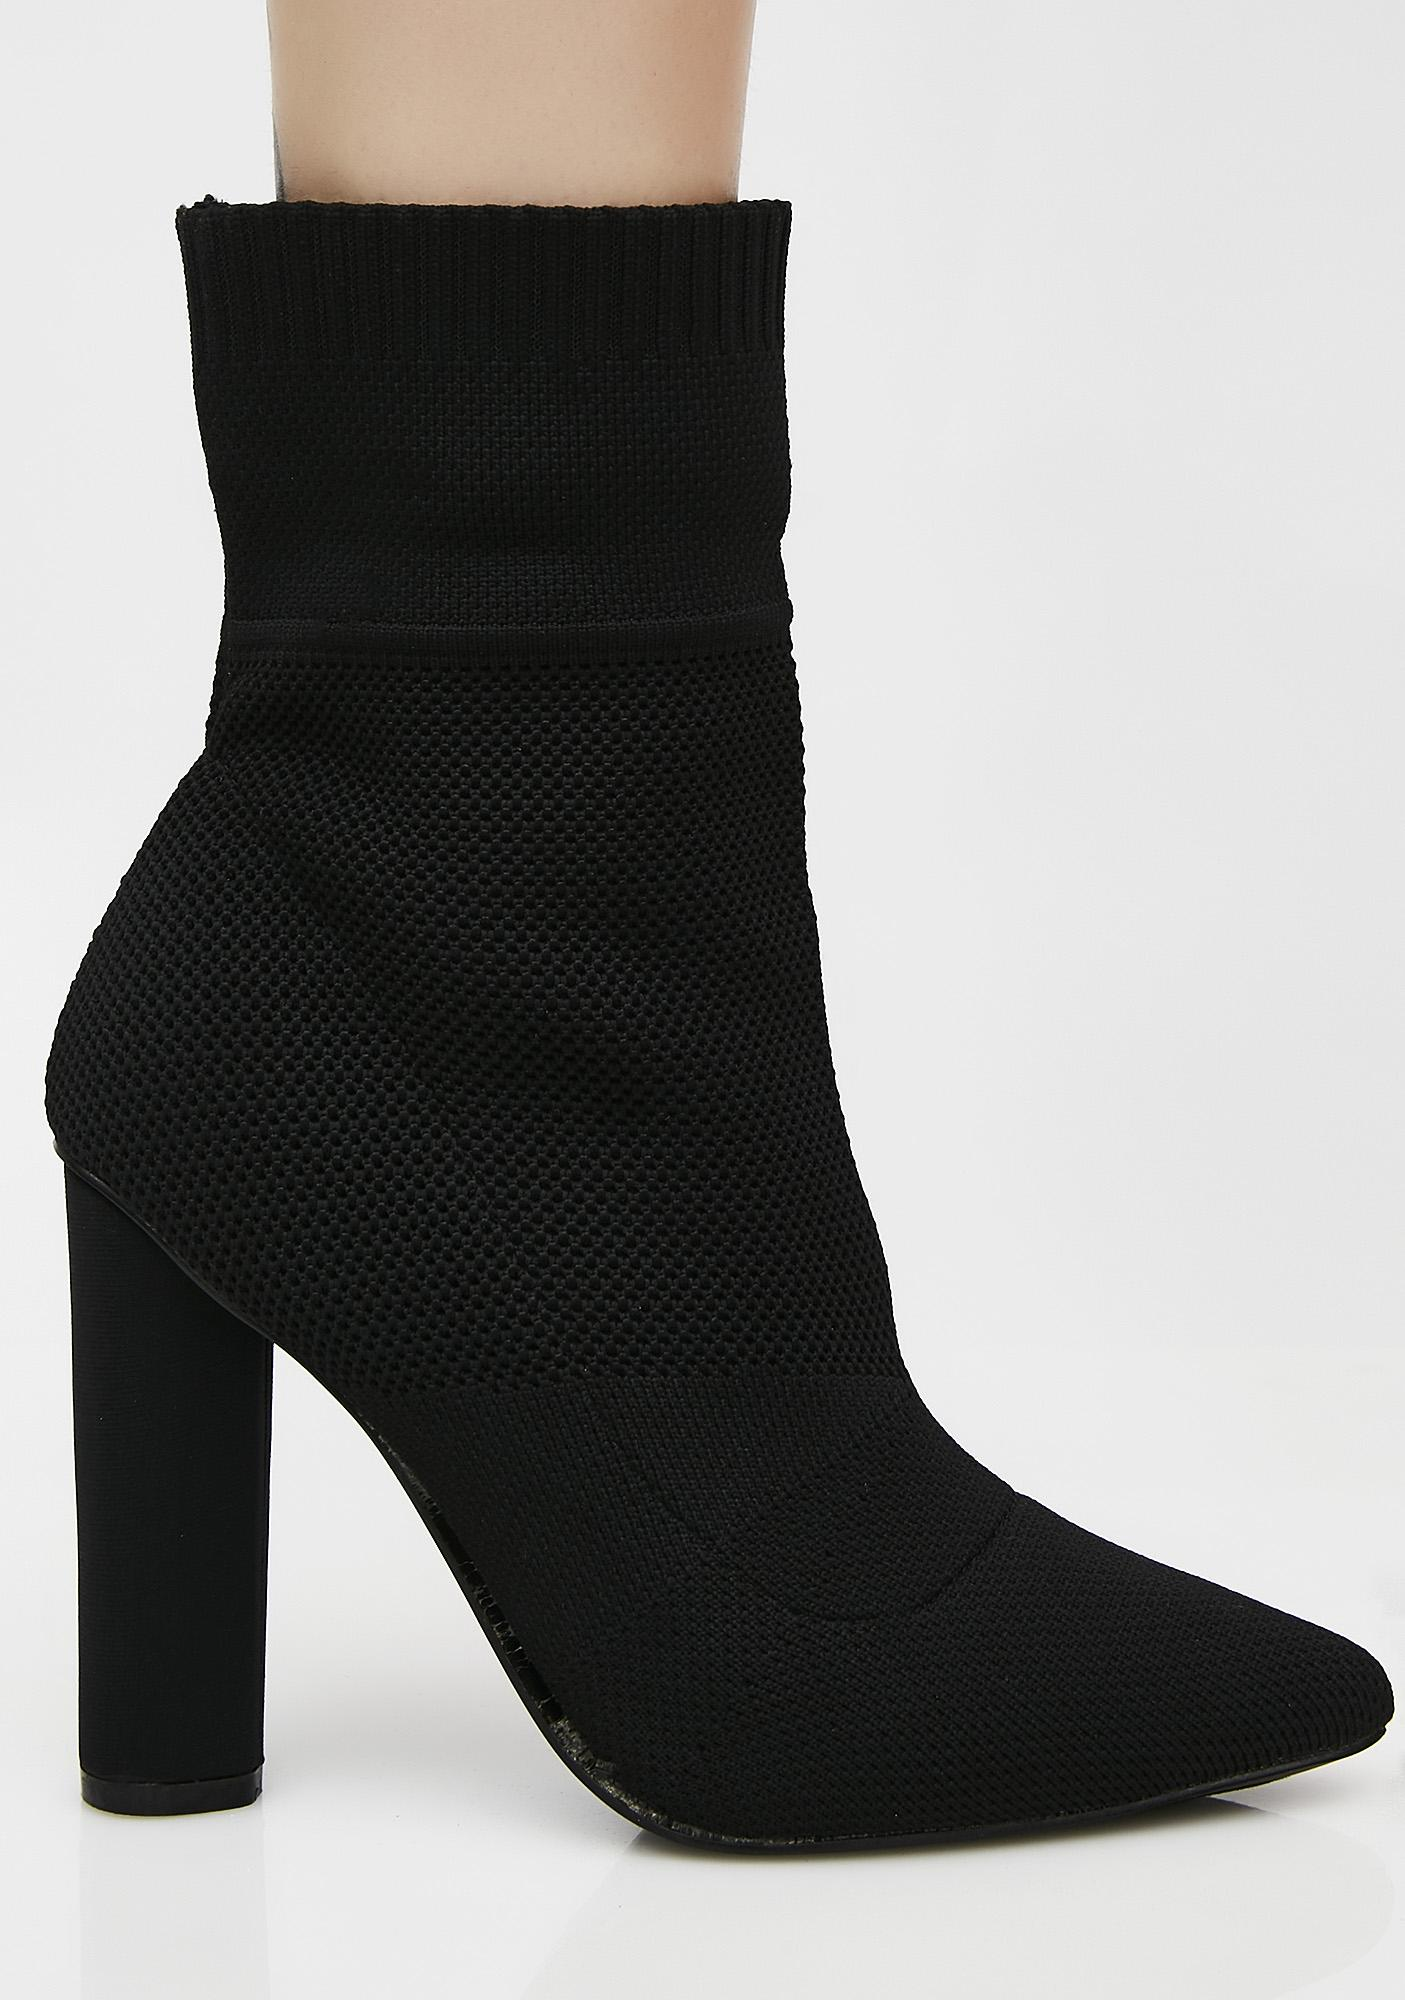 Onyx Hype Bae Sock Booties